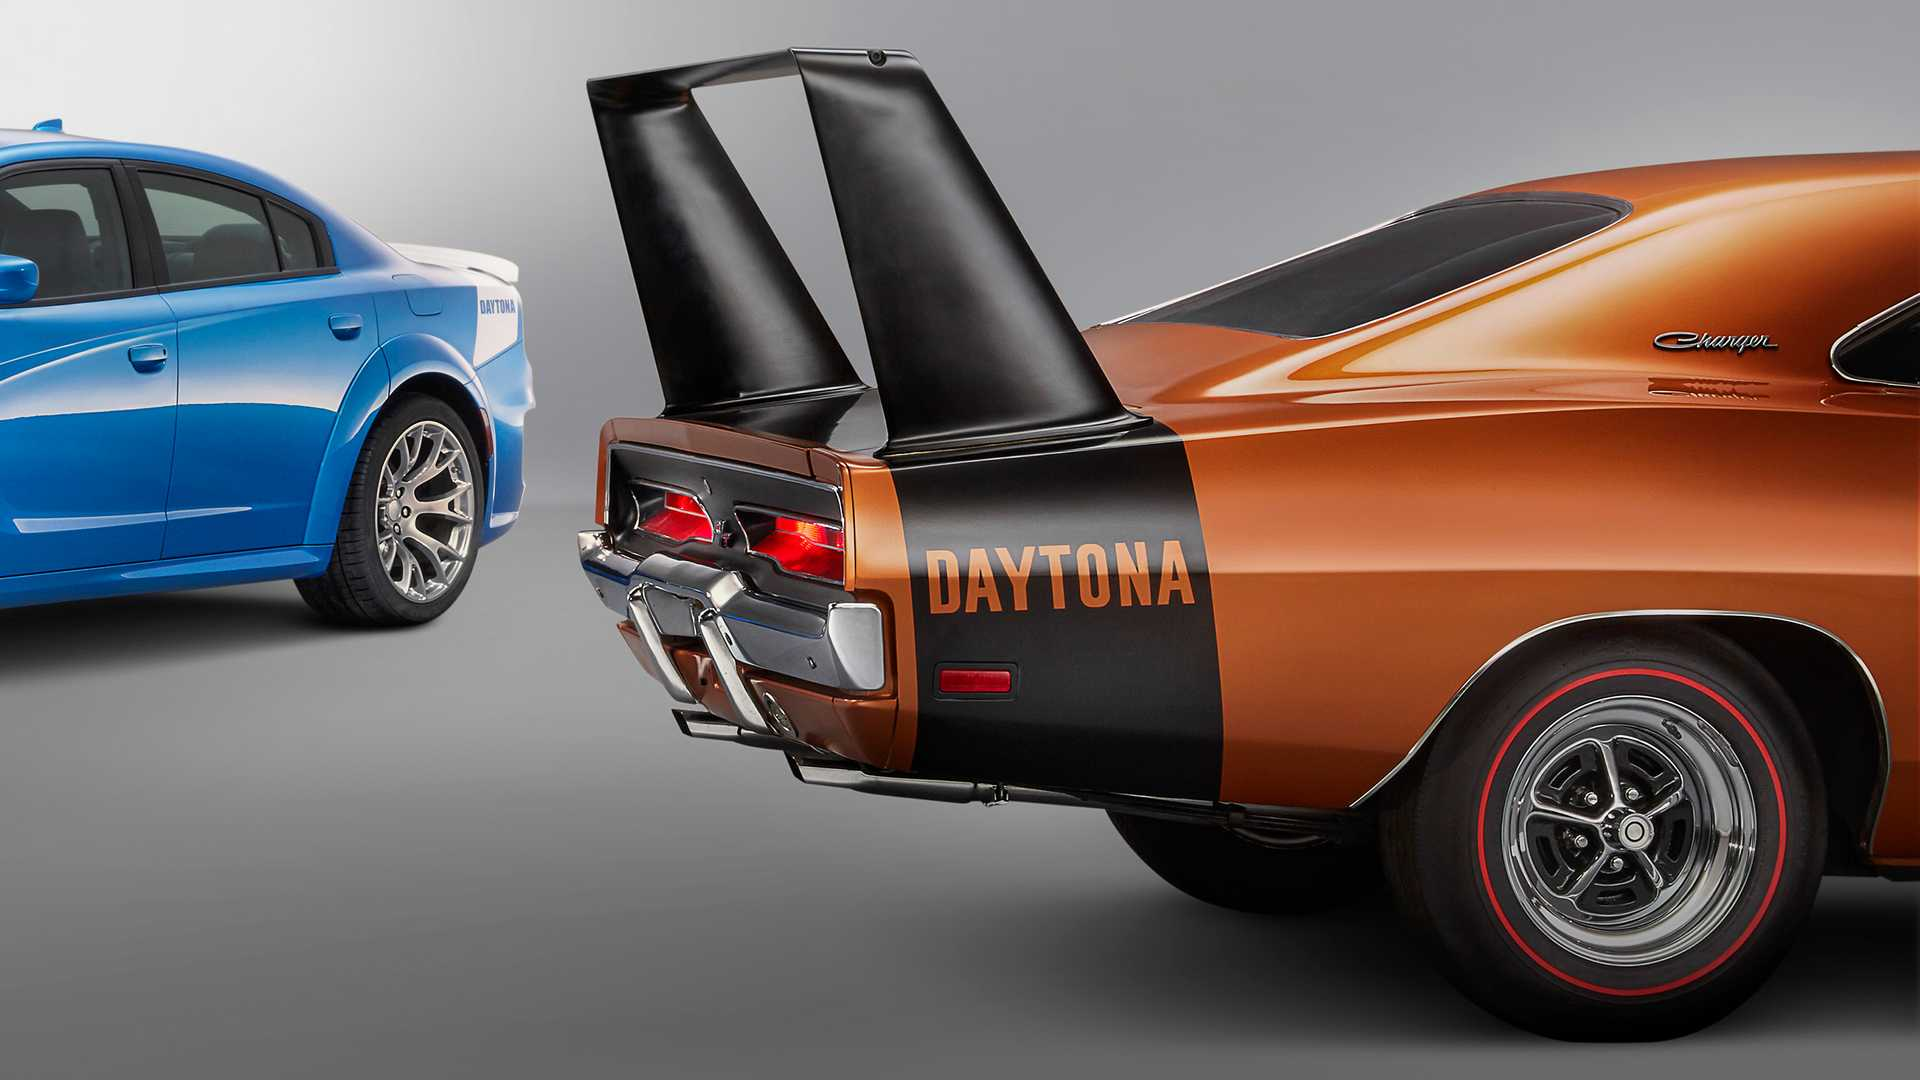 Dodge Charger Daytona Returns For 2020 With Limited Production Run